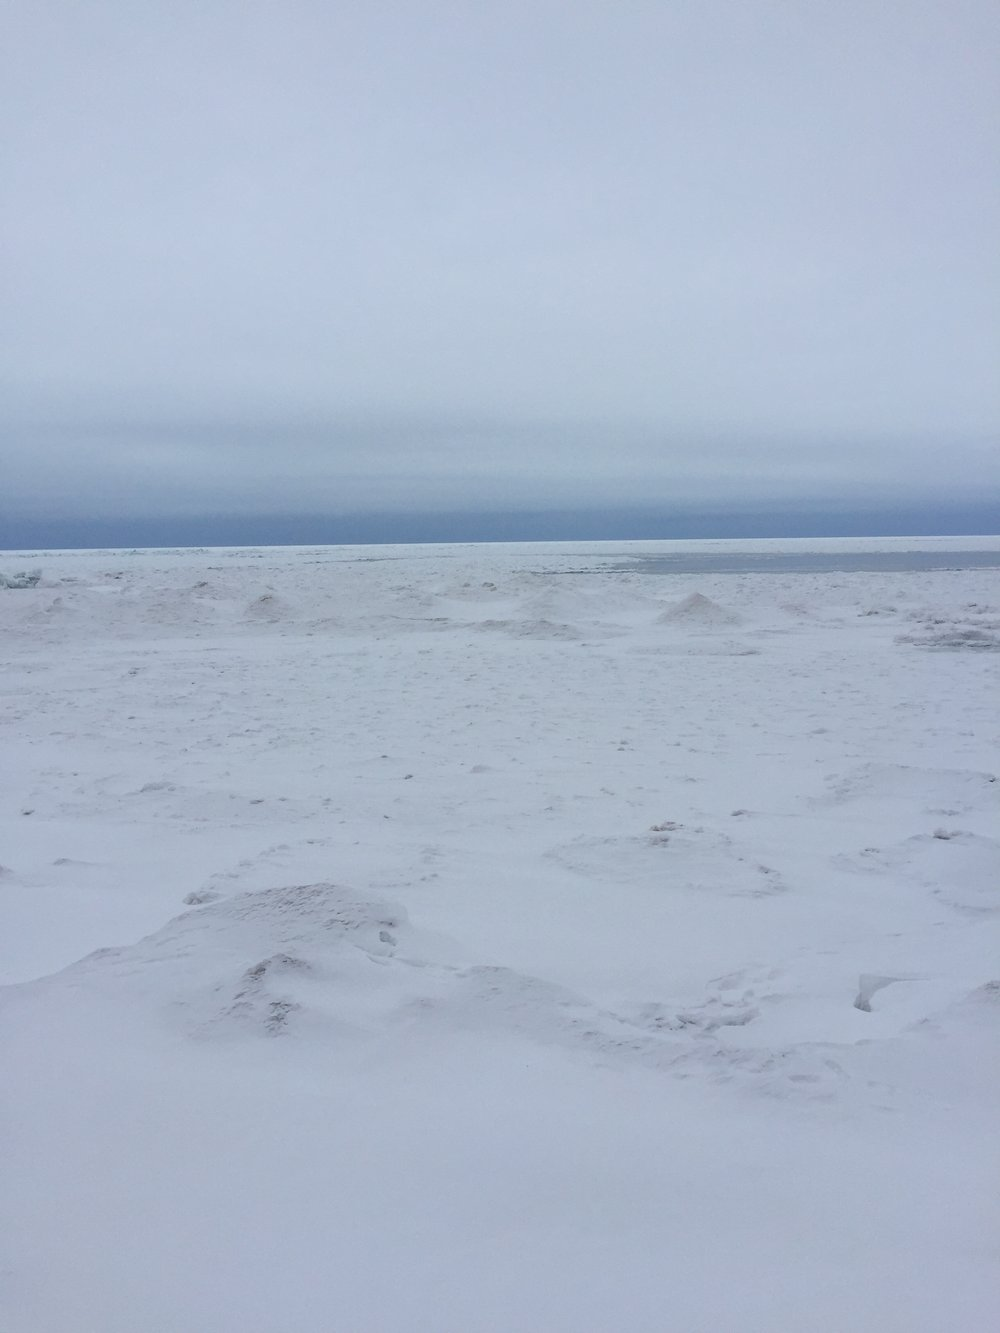 Lake Superior frozen for the winter